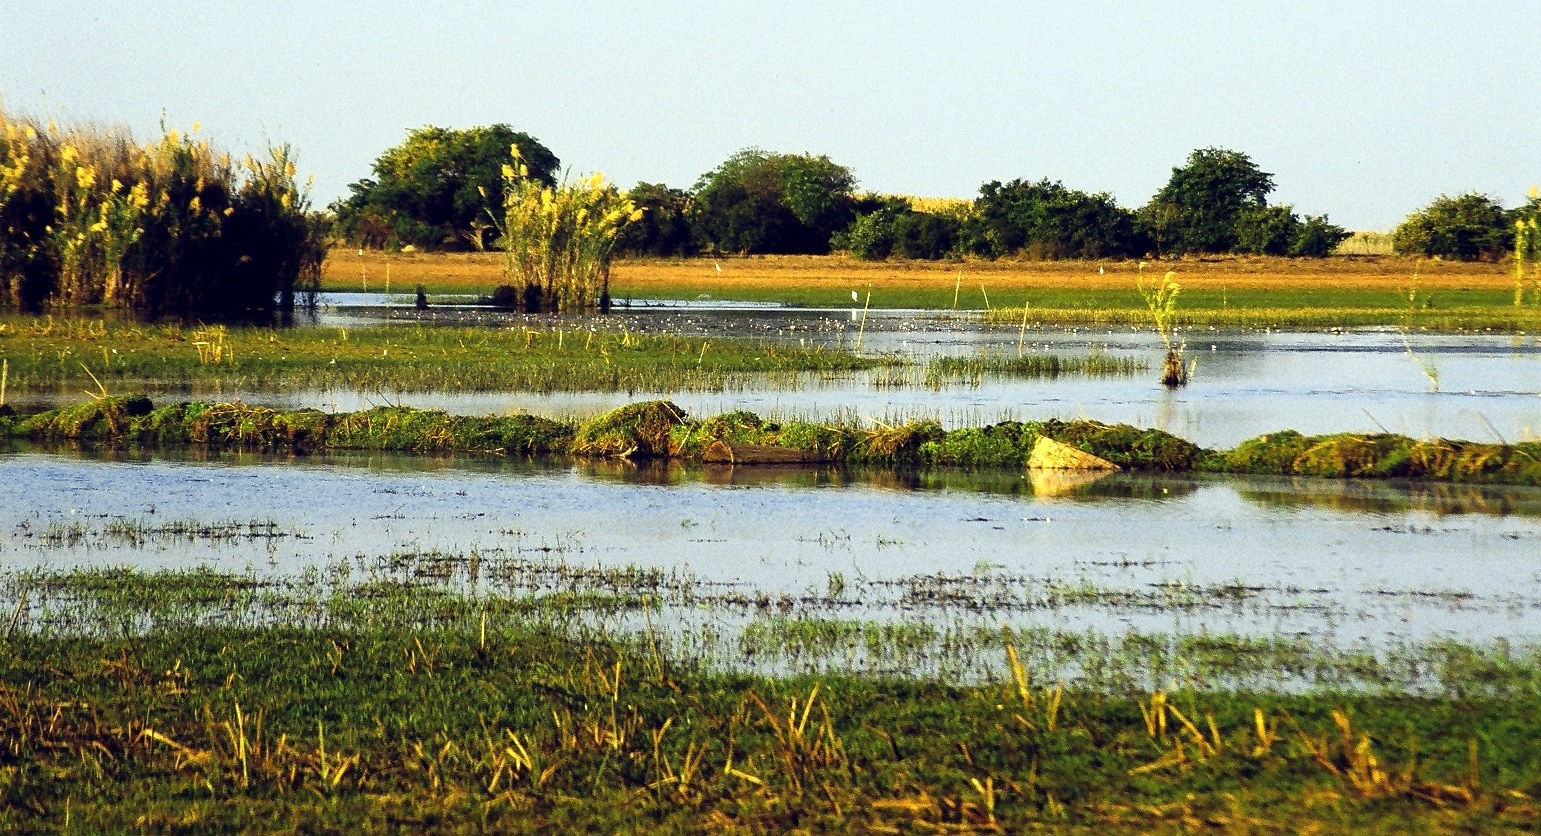 Wetlands in Africa